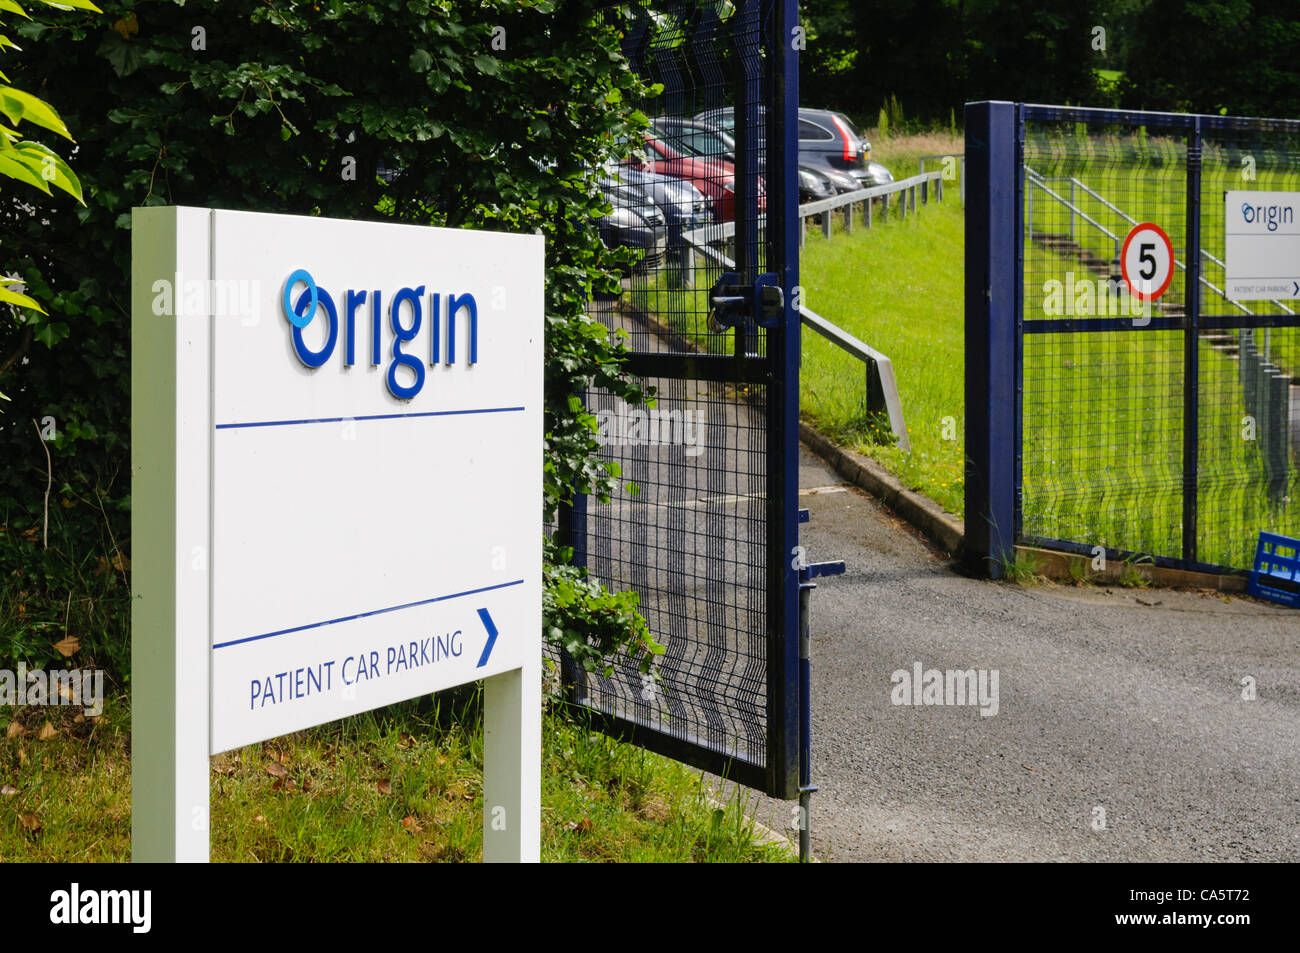 Belfast, 13/06/2012 - Origin fertility clinic is forced to close temporarily after managerial and regulatory problems - Stock Image